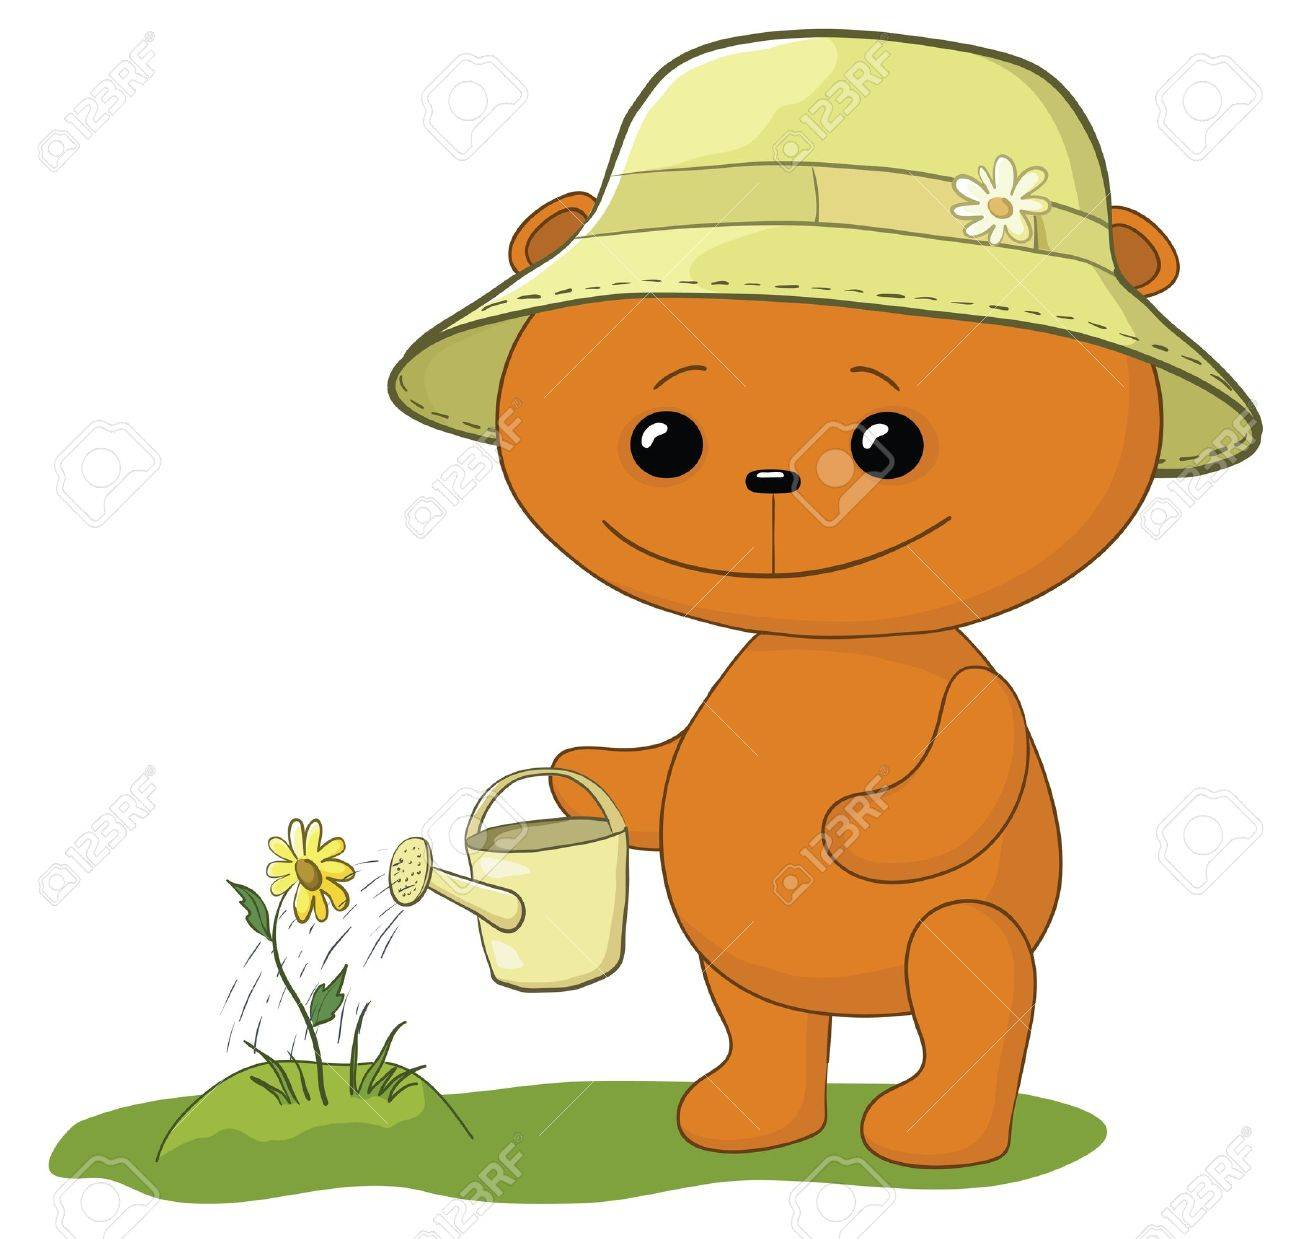 teddy bear gardener waters a bed with a flower from a watering can - 10427523